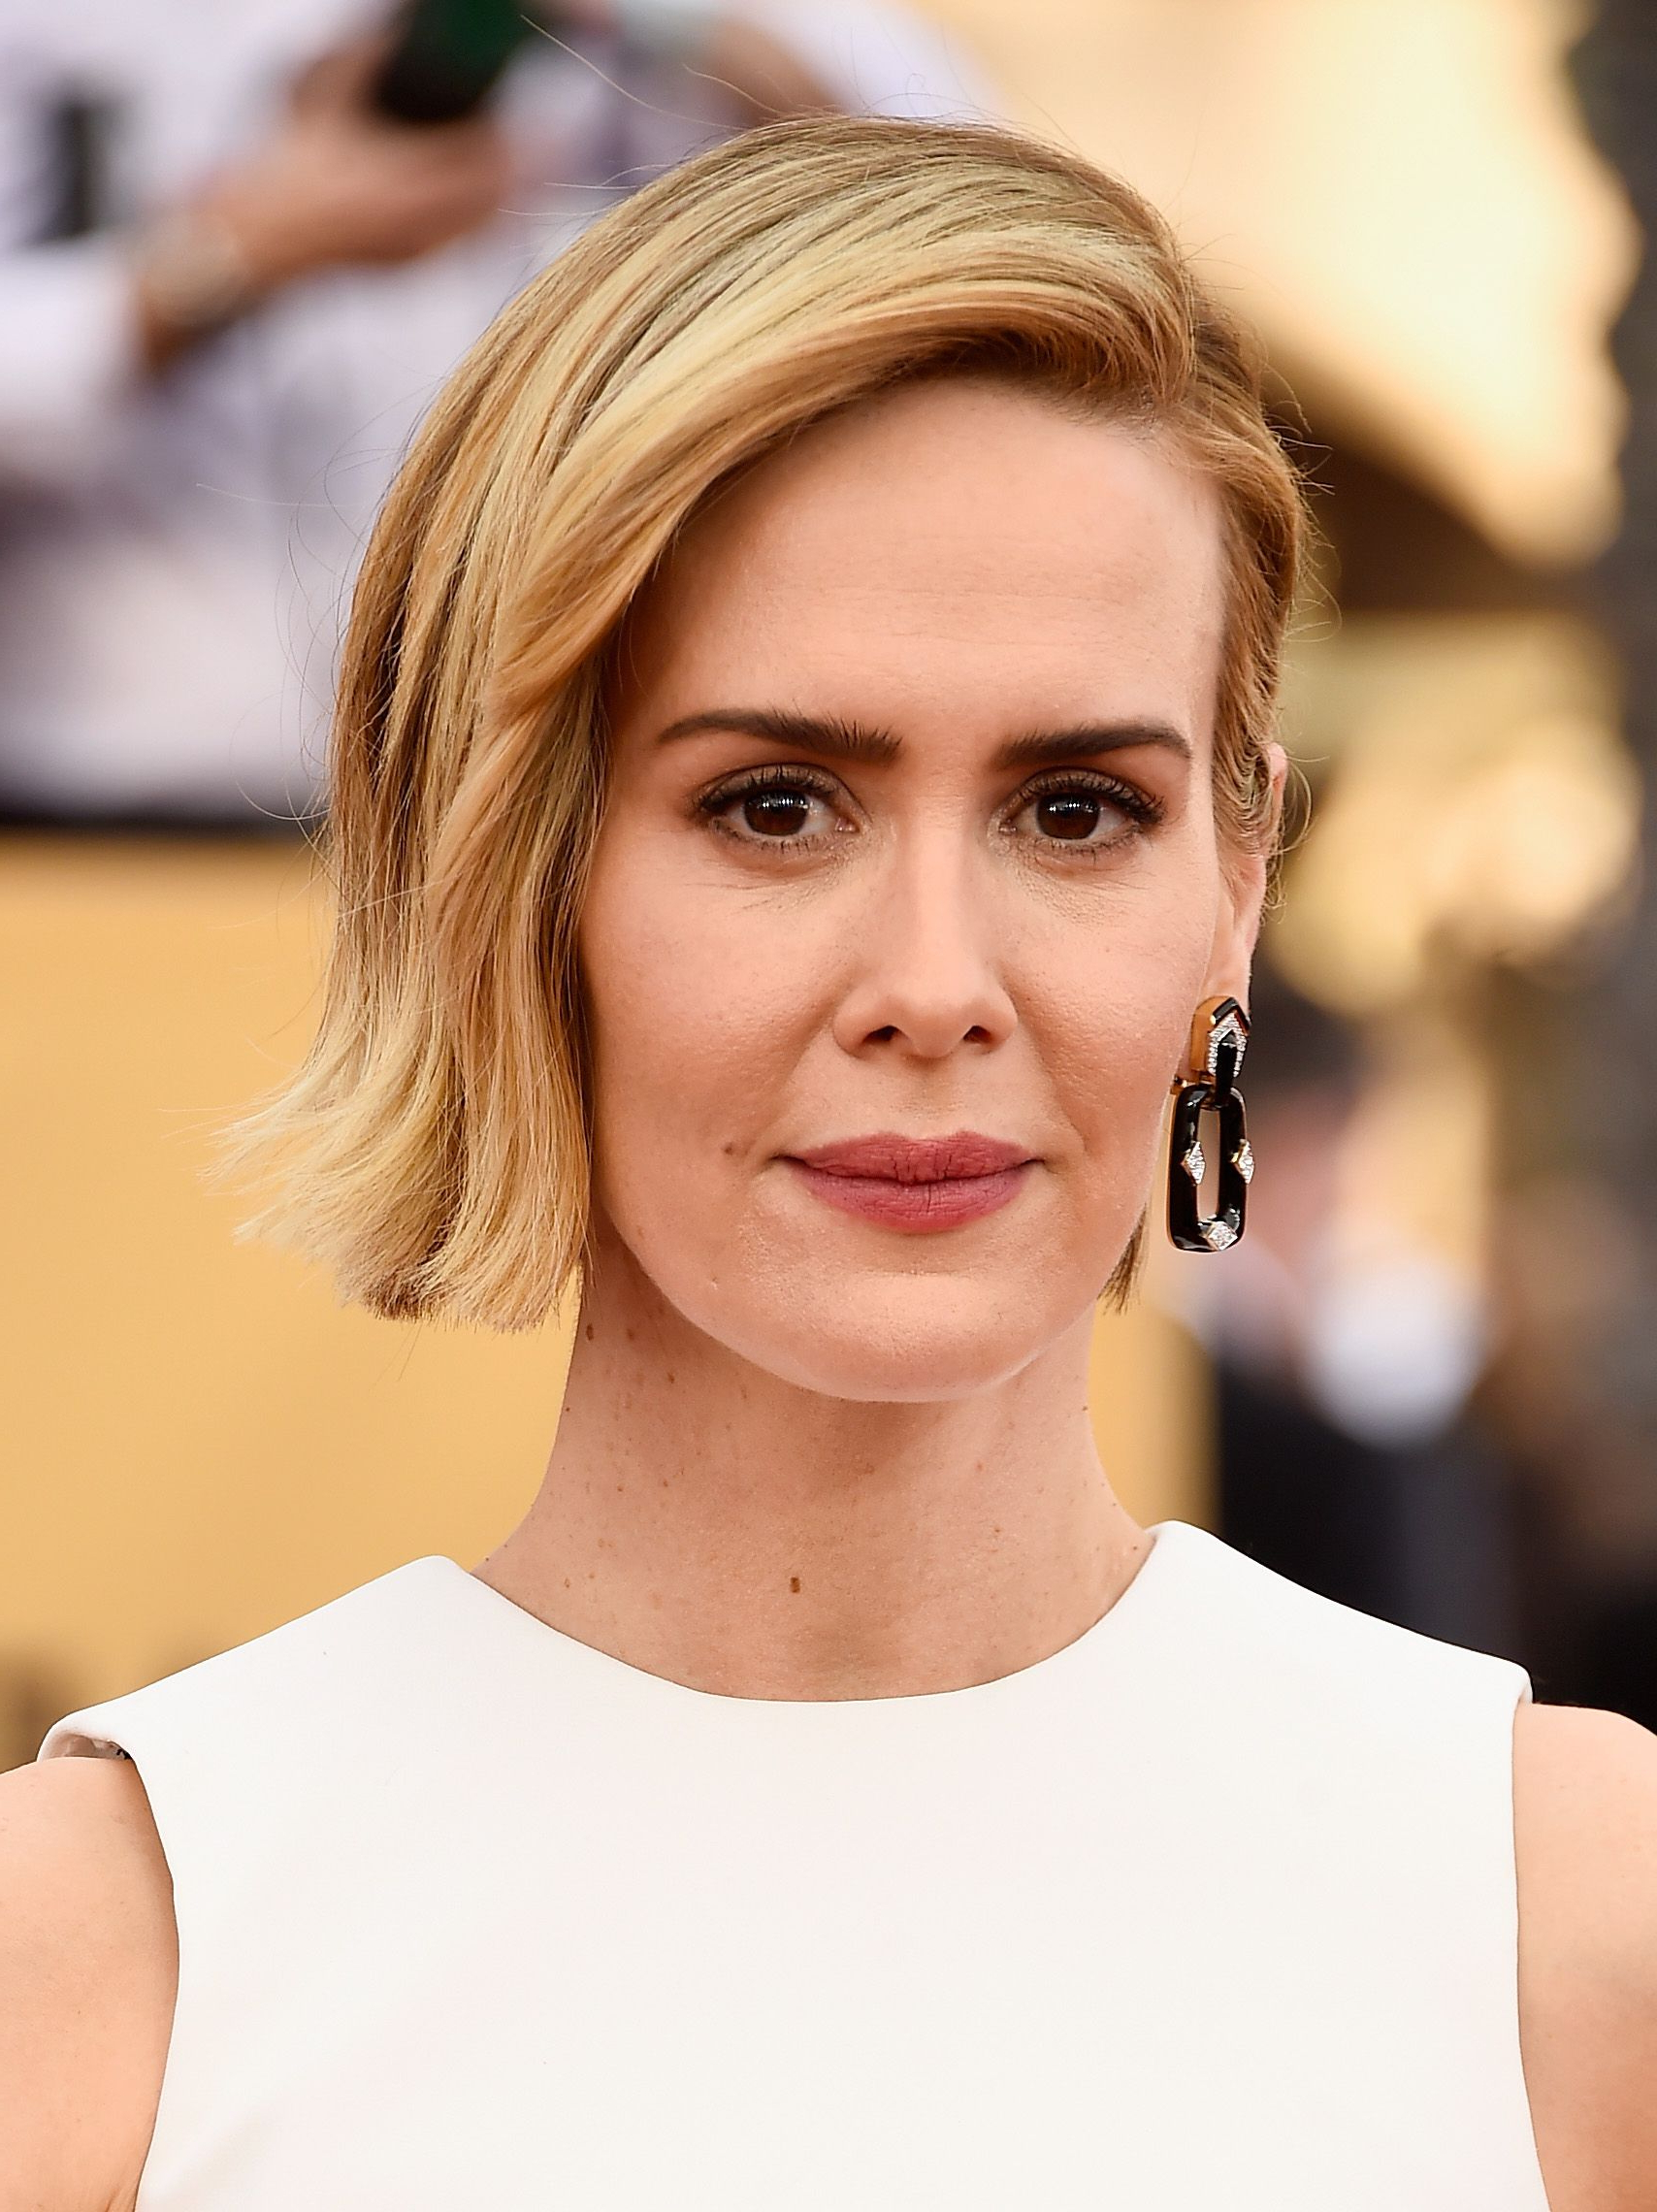 65 Best Short Hairstyles, Haircuts, And Short Hair Ideas For 2018 Within Celebrities Short Haircuts (View 10 of 25)